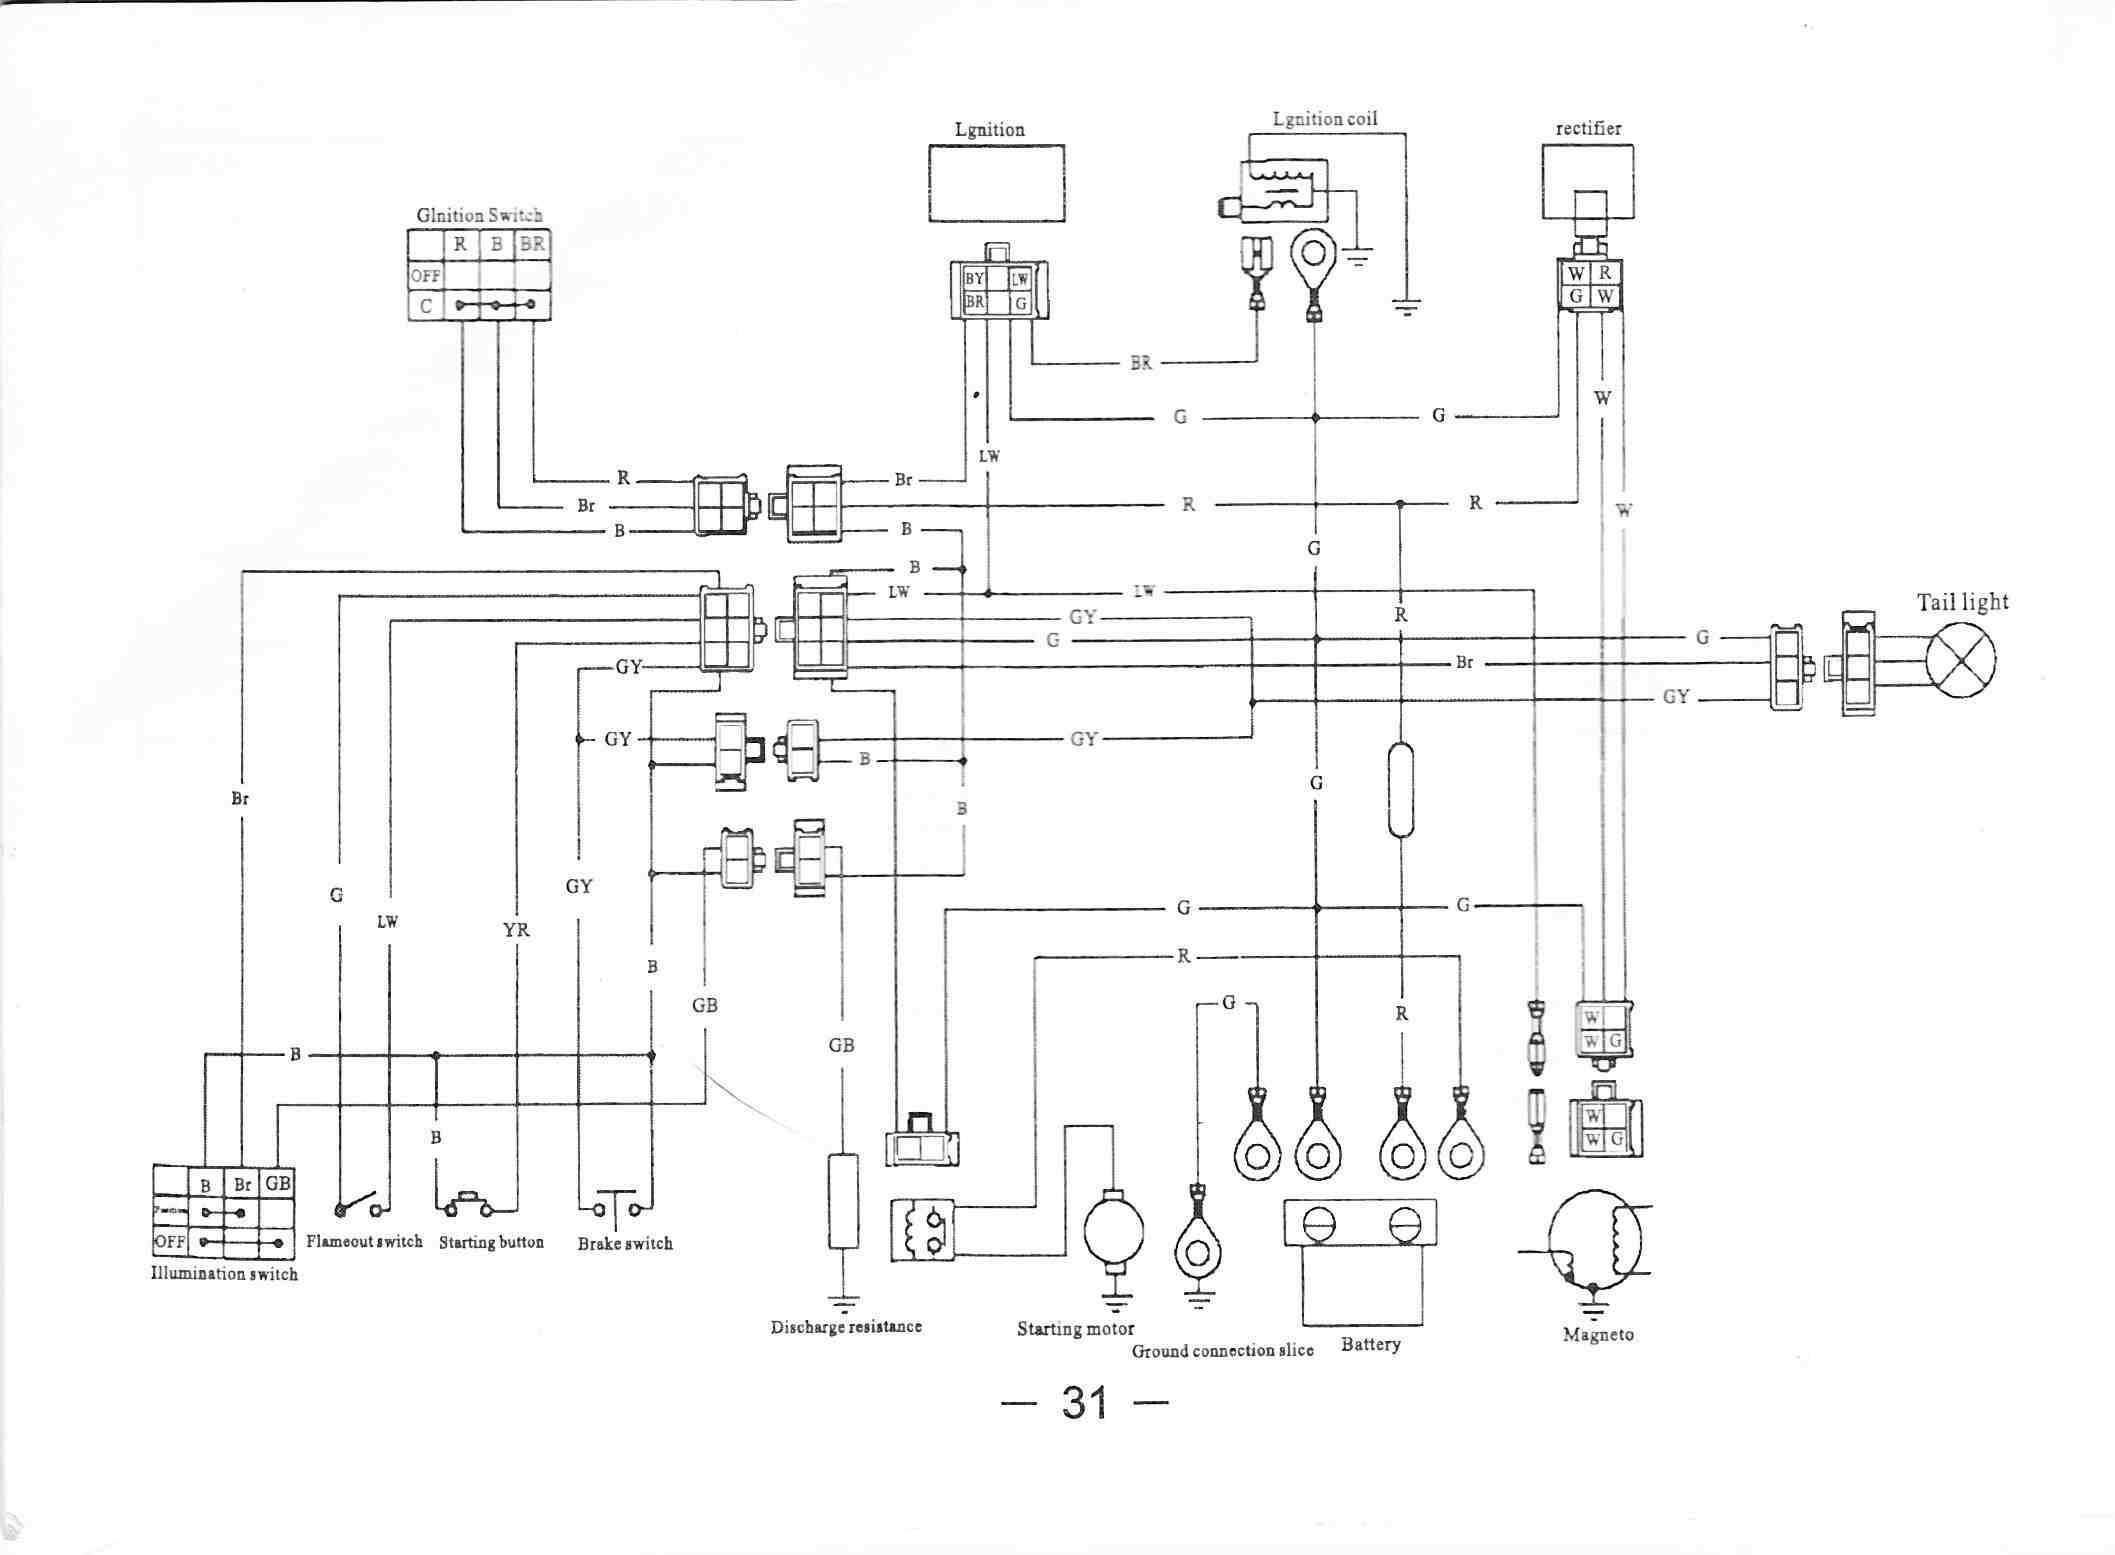 250 Atv Wiring Diagrams | Bege Wiring DiagramBege Wiring Diagram